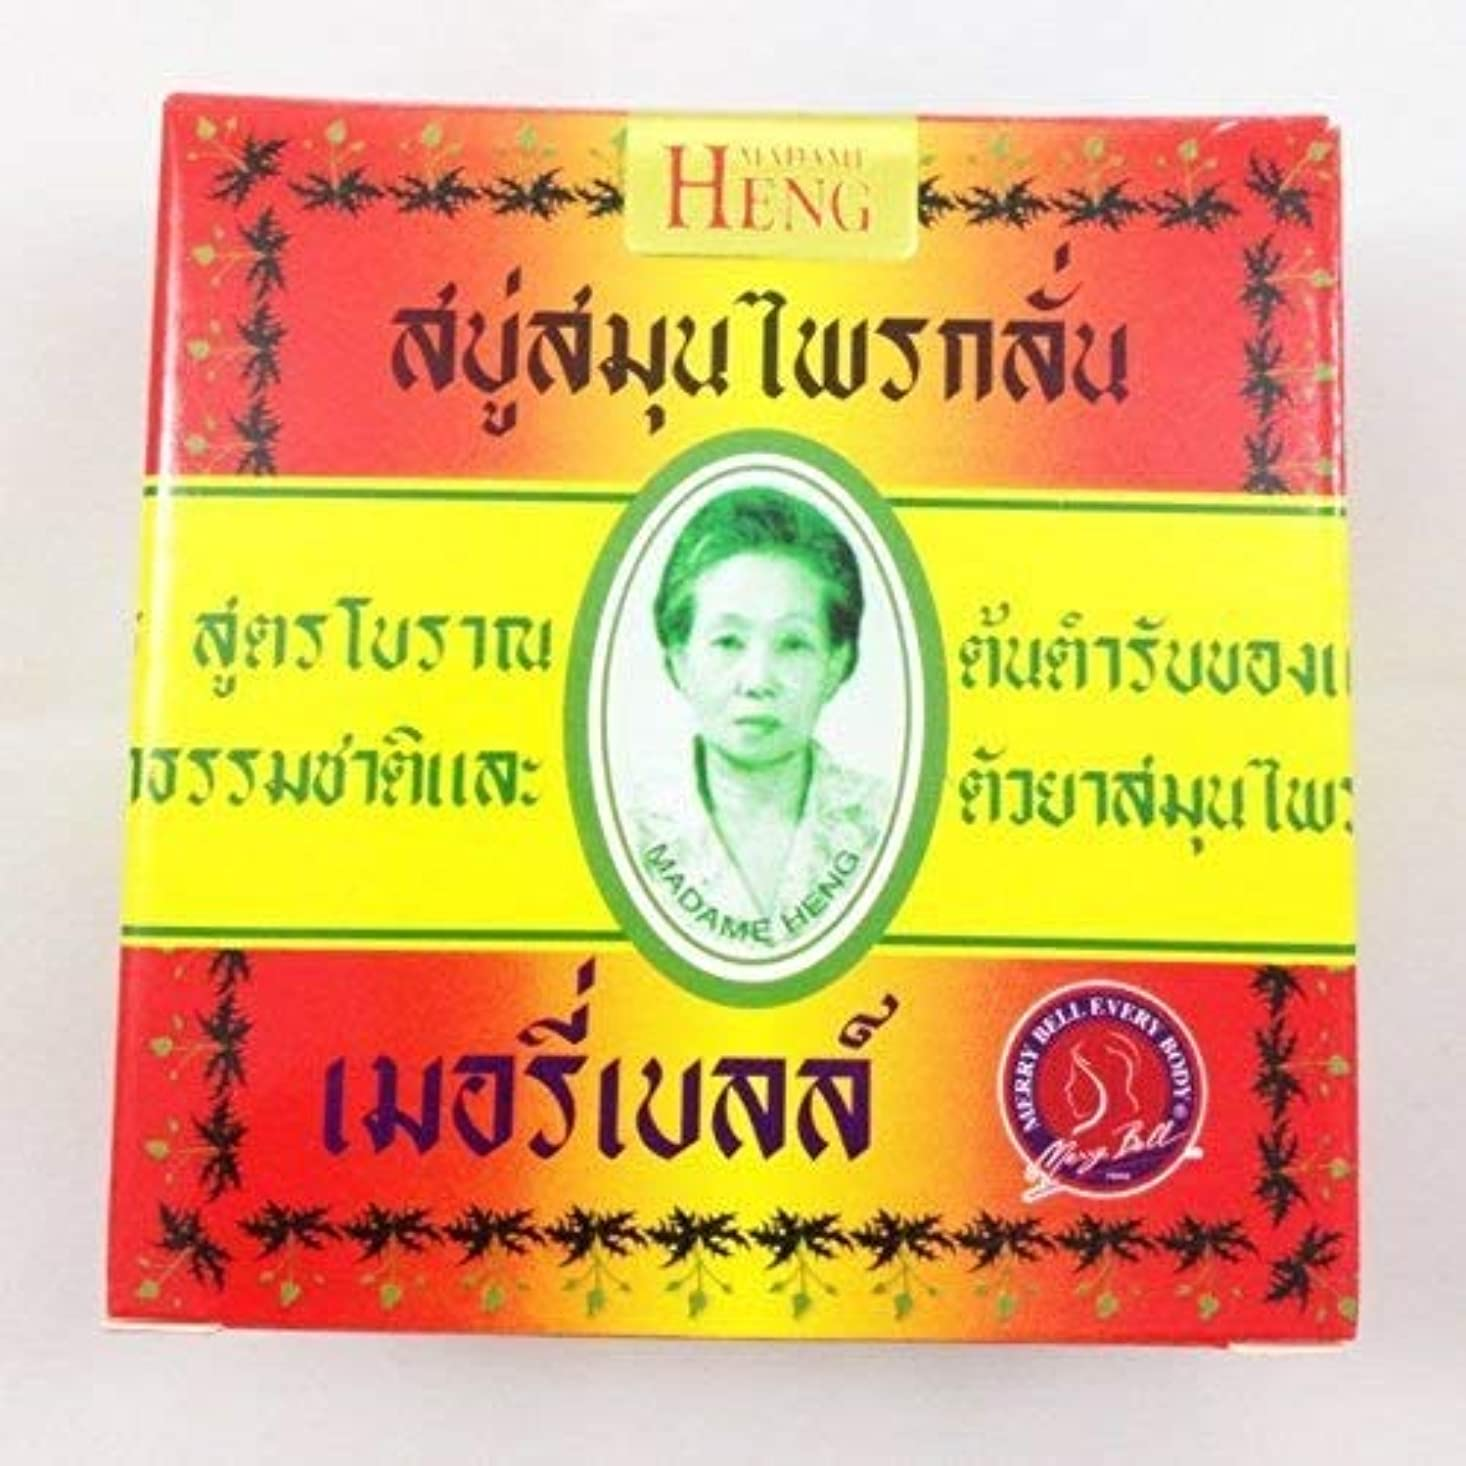 オリエントイースター退院Madame Heng Thai Original Natural Herbal Soap Bar Made in Thailand 160gx2pcs by Ni Yom Thai shop